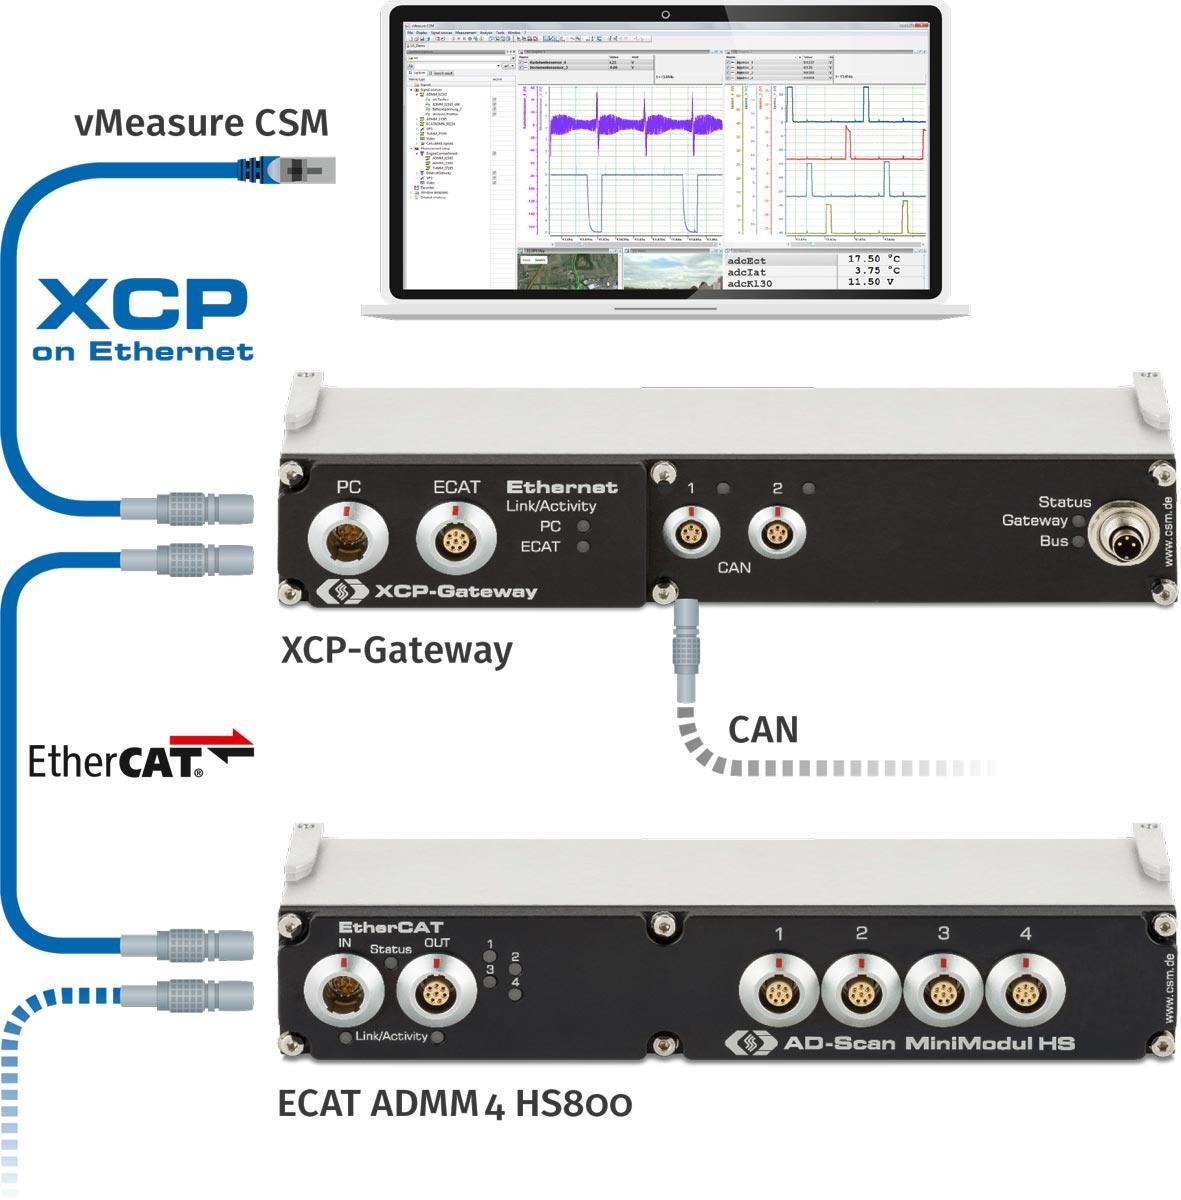 Diagram of an ECAT measurement setup with XCP-Gateway